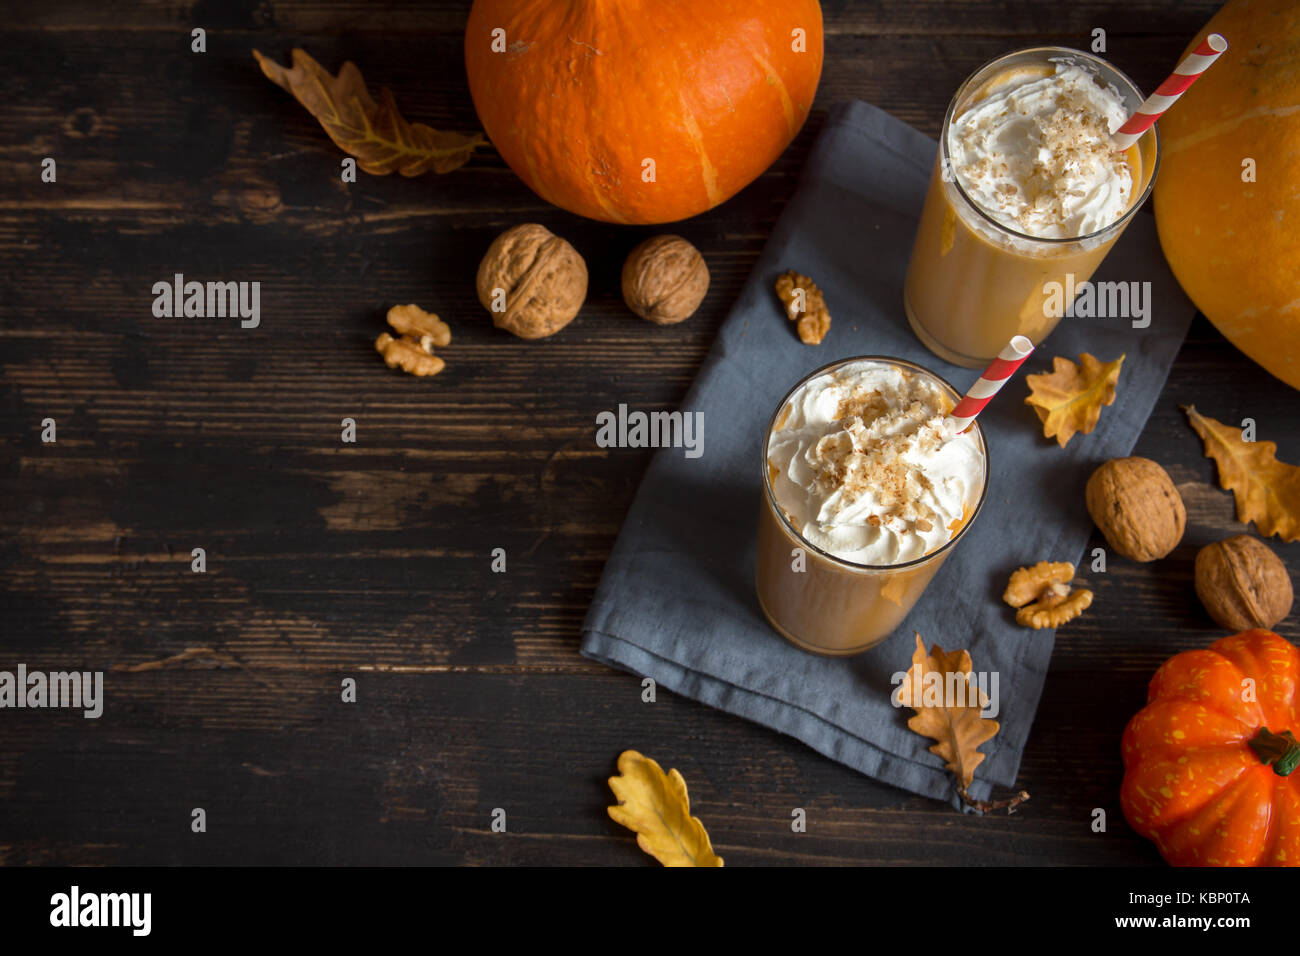 Pumpkin Smoothie. Fresh Pumpkin and Apple Smoothie or Milkshake with Walnuts and Autumn Spices. Seasonal Autumn - Stock Image